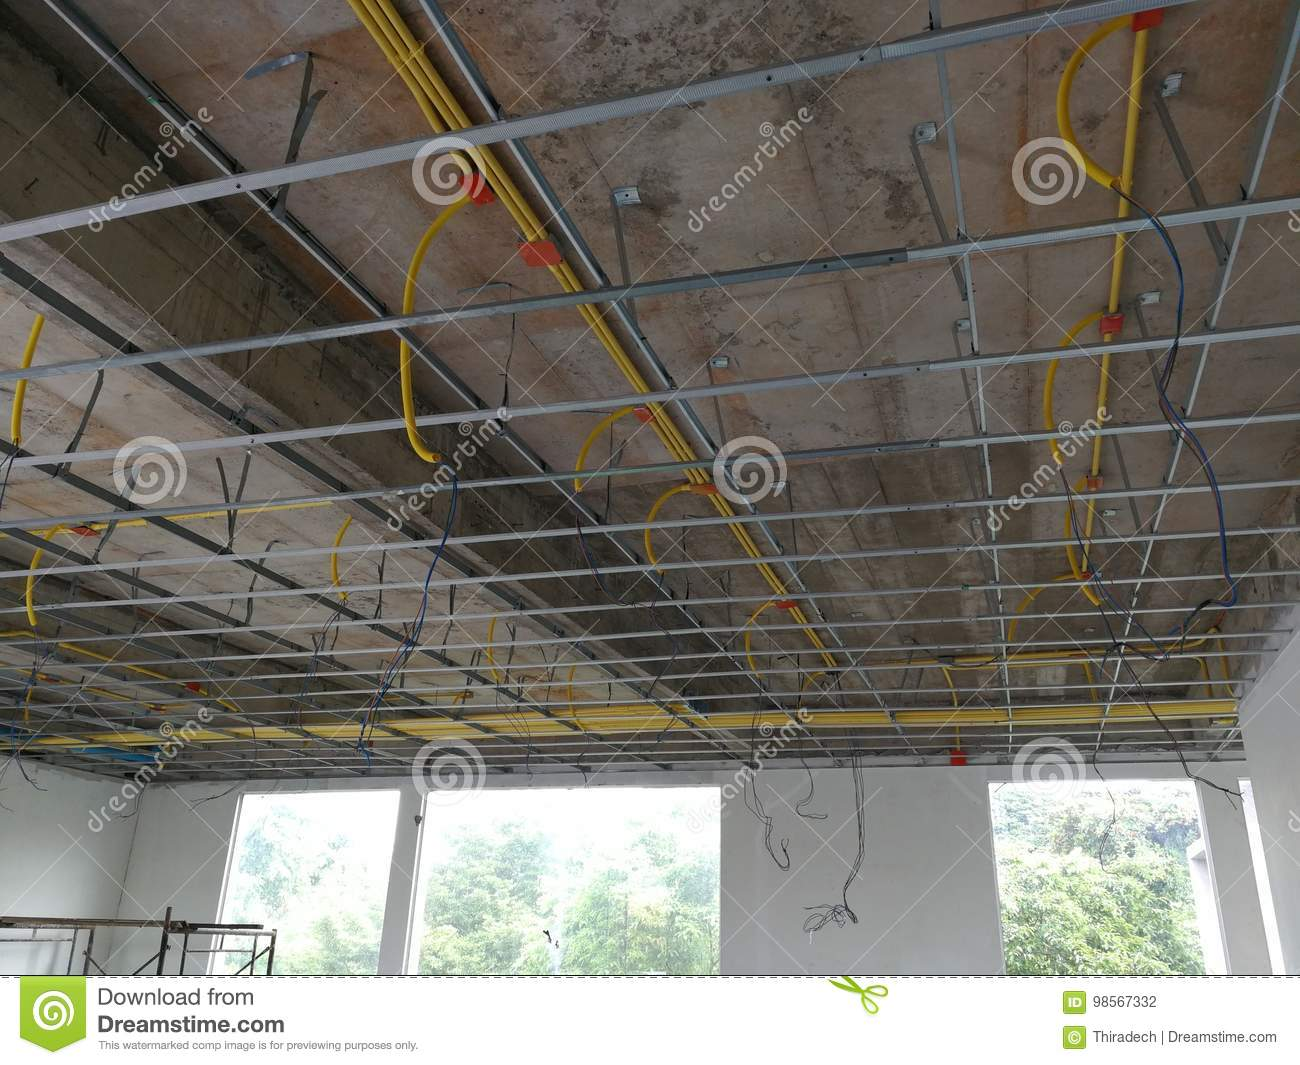 install the ceiling frame and wiring pipe